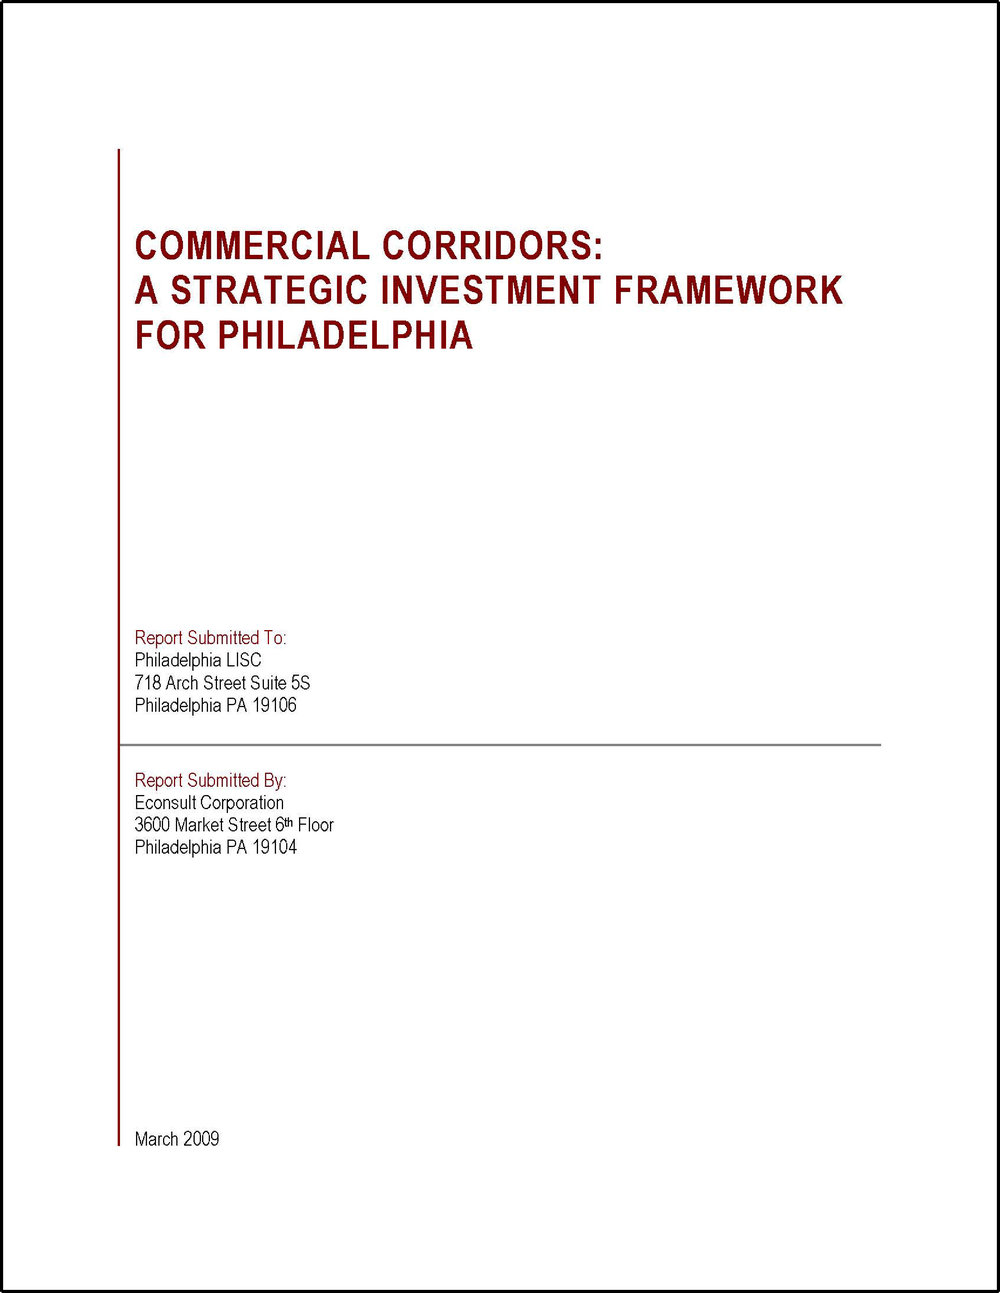 Commercial Corridors: A Strategic Investment Framework for Philadelphia (Collaborative Publication)